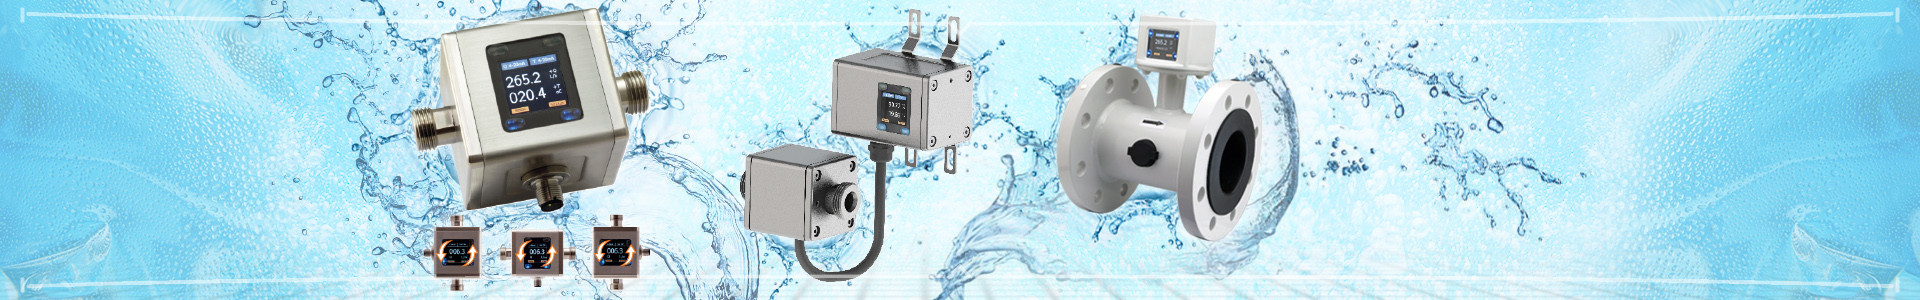 Industrial measuring and control equipment in the field of